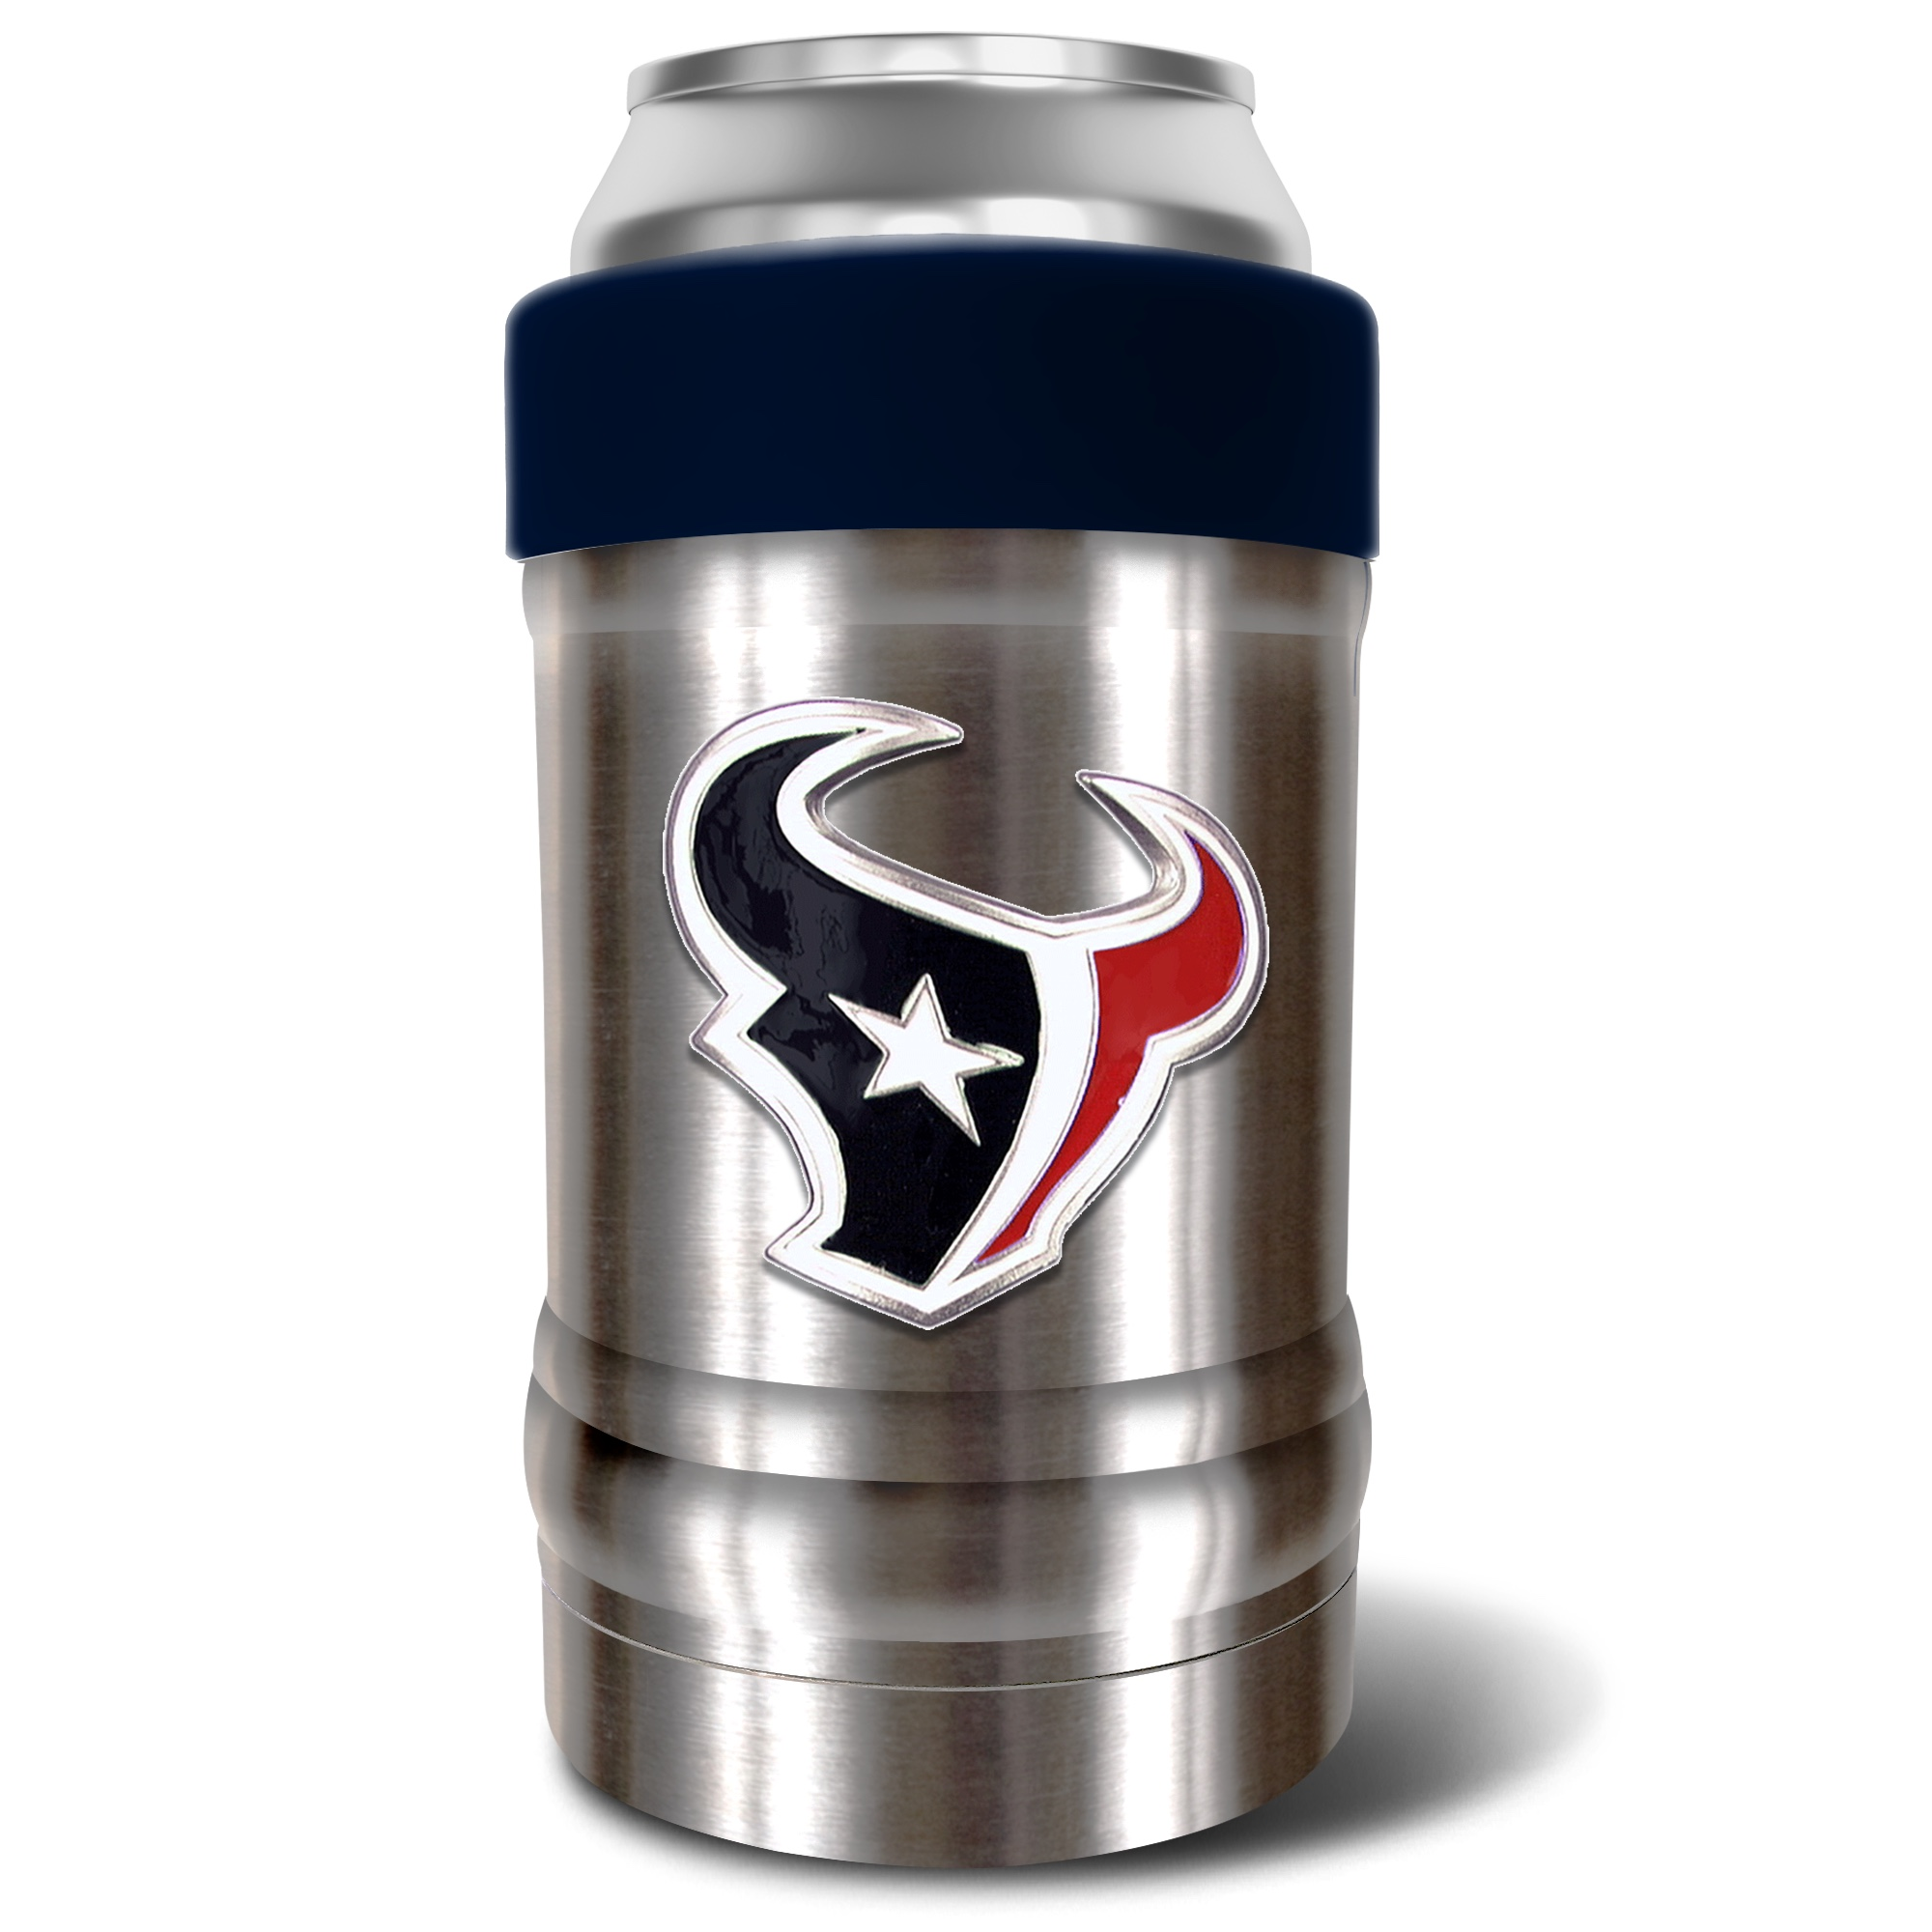 Houston Texans The Locker 12oz. Can Holder - Silver/Navy - No Size